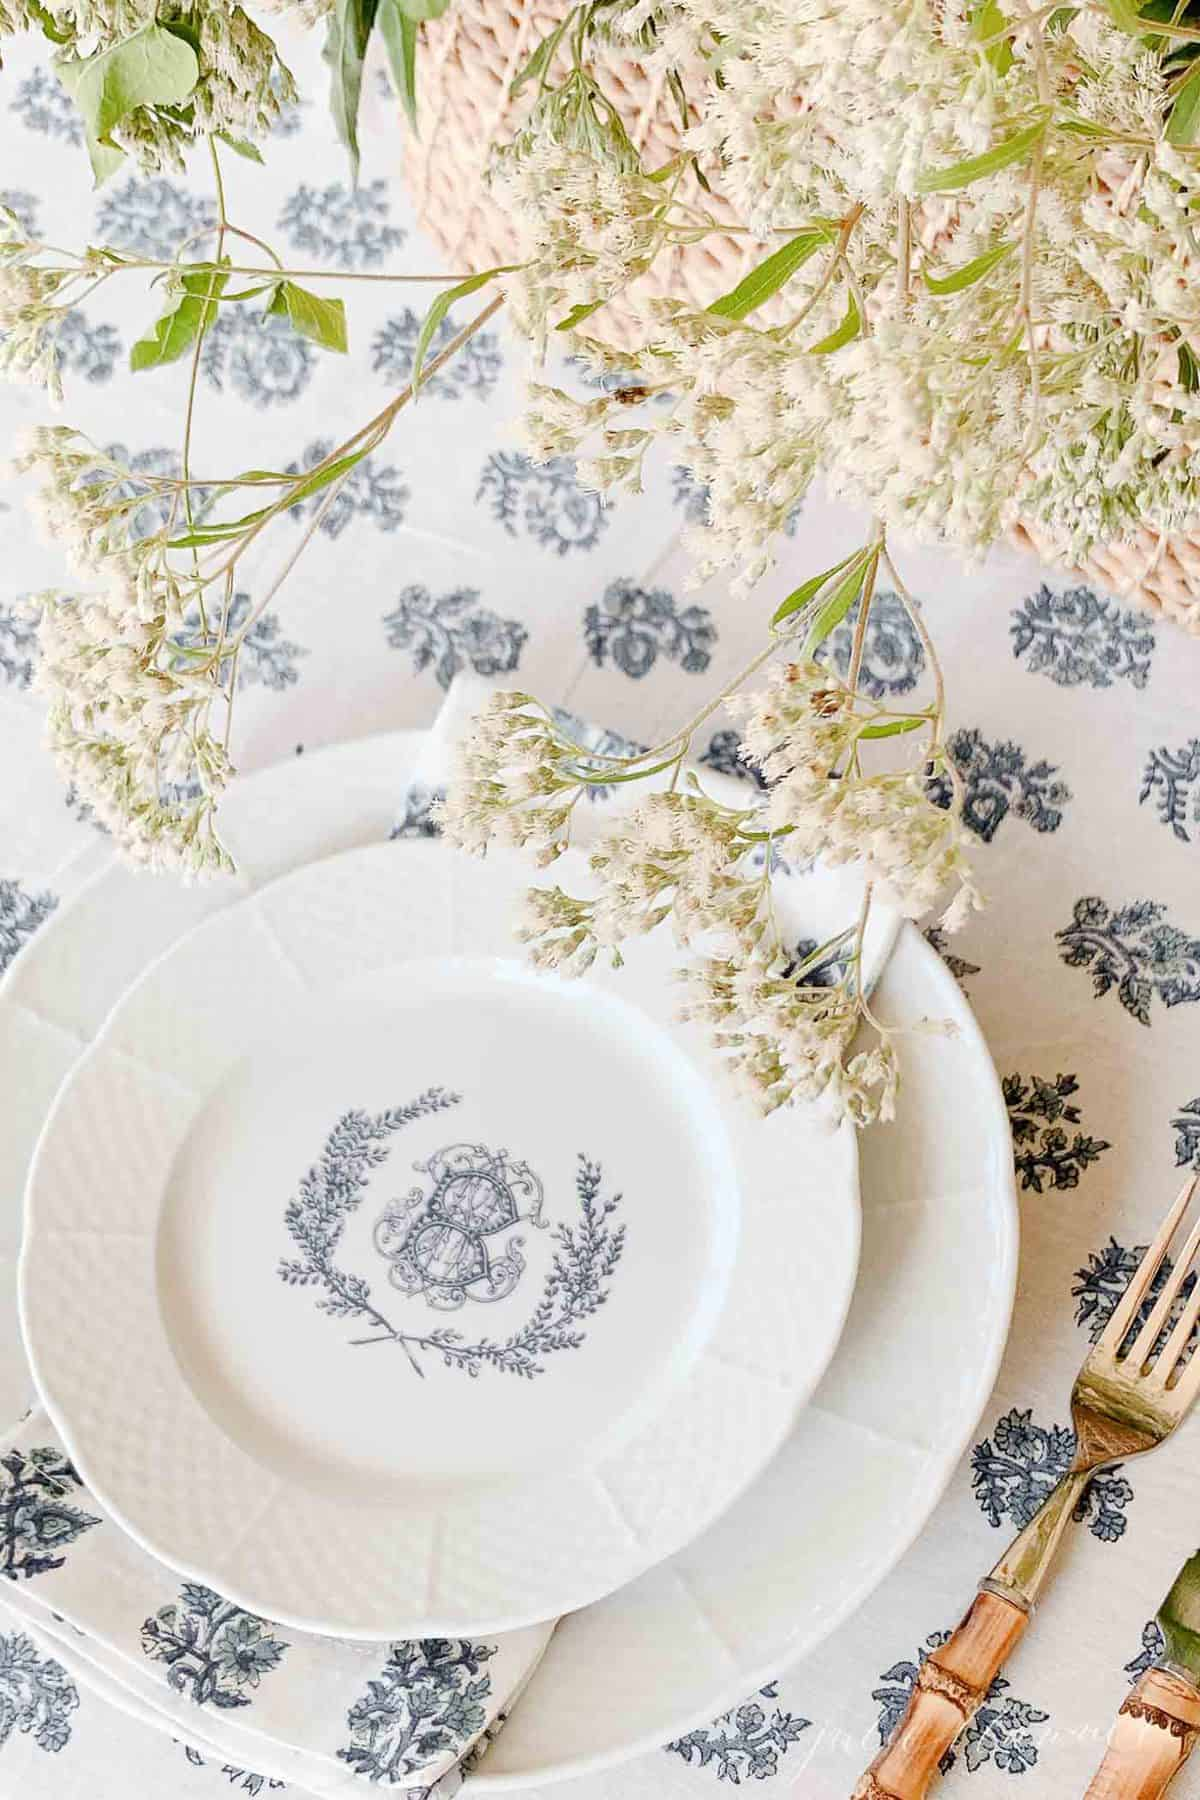 kalamkari block print table cloth with personalized china and wildflowers with bamboo flatware